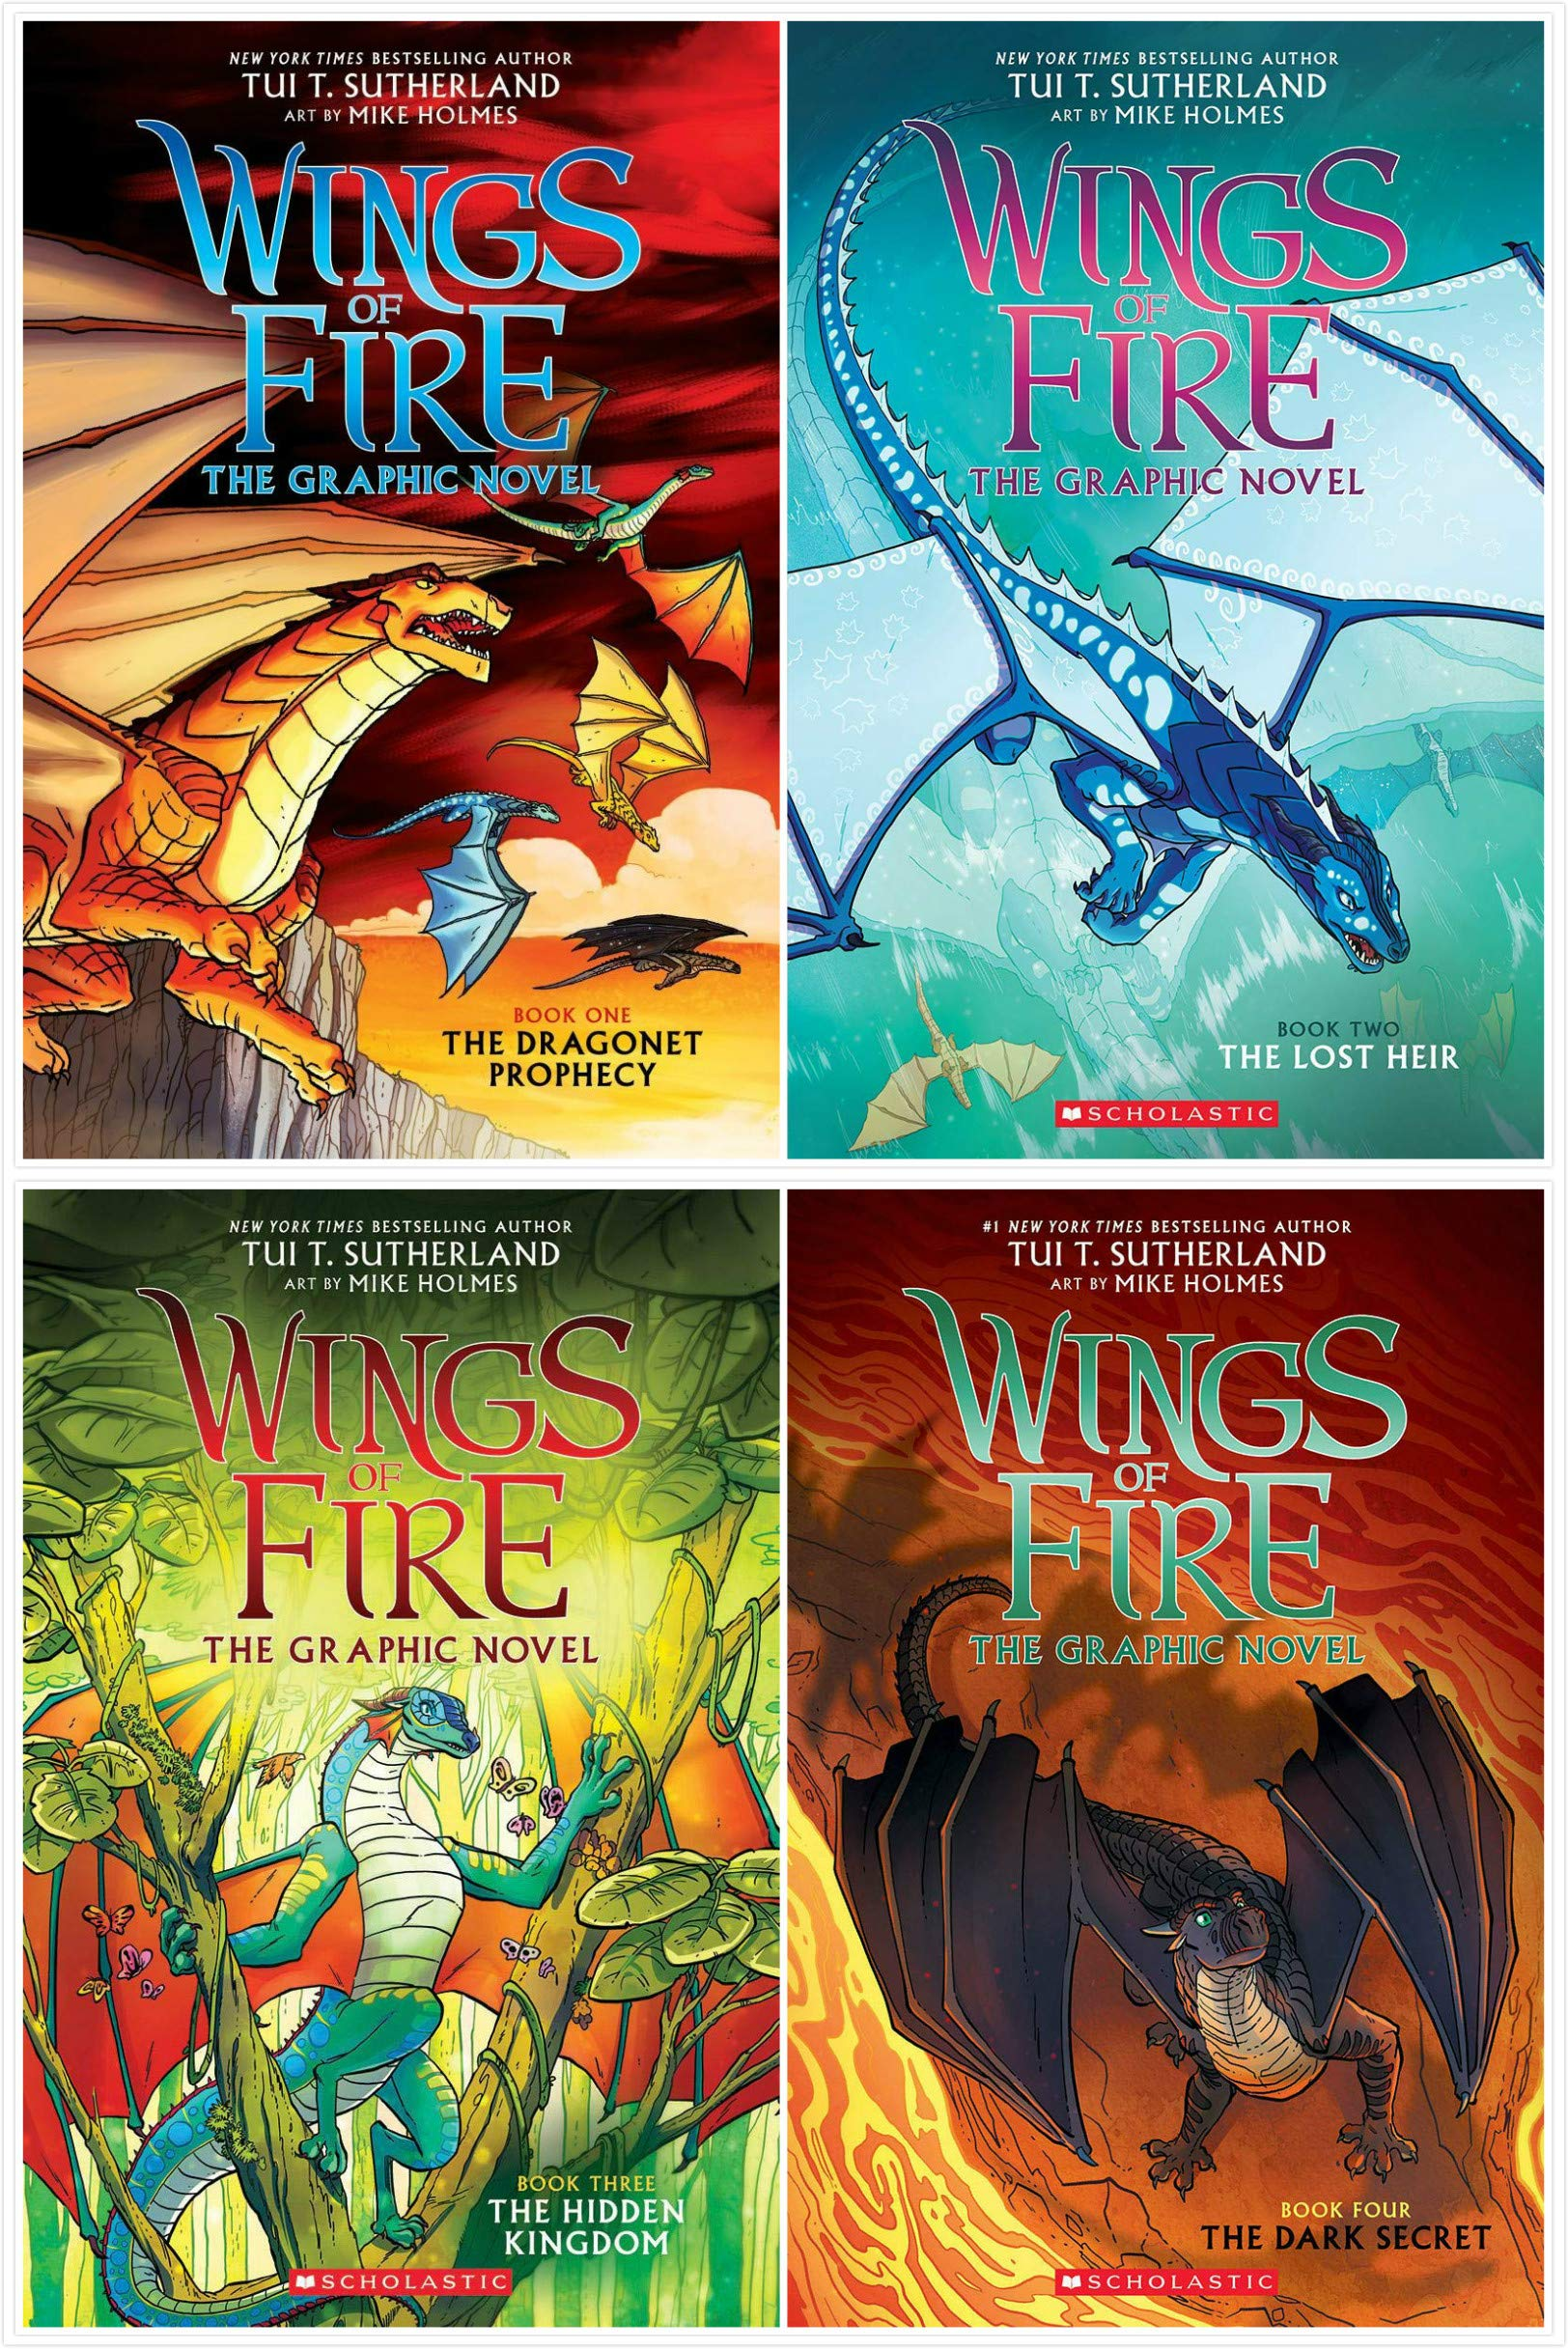 Wings of Fire Graphic Novel 5 Release date